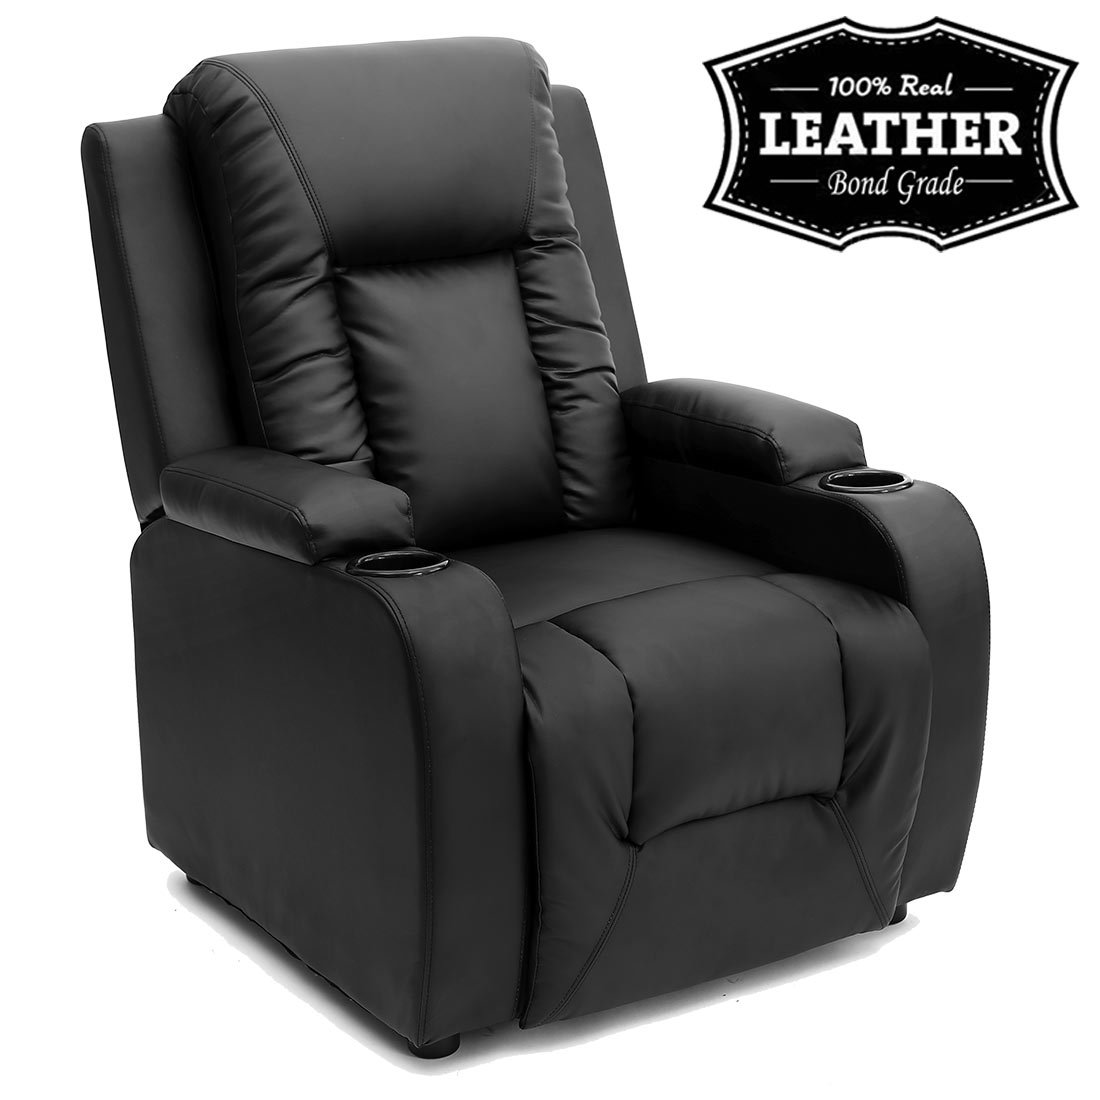 Superieur OSCAR LEATHER RECLINER W DRINK HOLDERS ARMCHAIR SOFA CHAIR RECLINING CINEMA  (Black): Amazon.co.uk: Kitchen U0026 Home